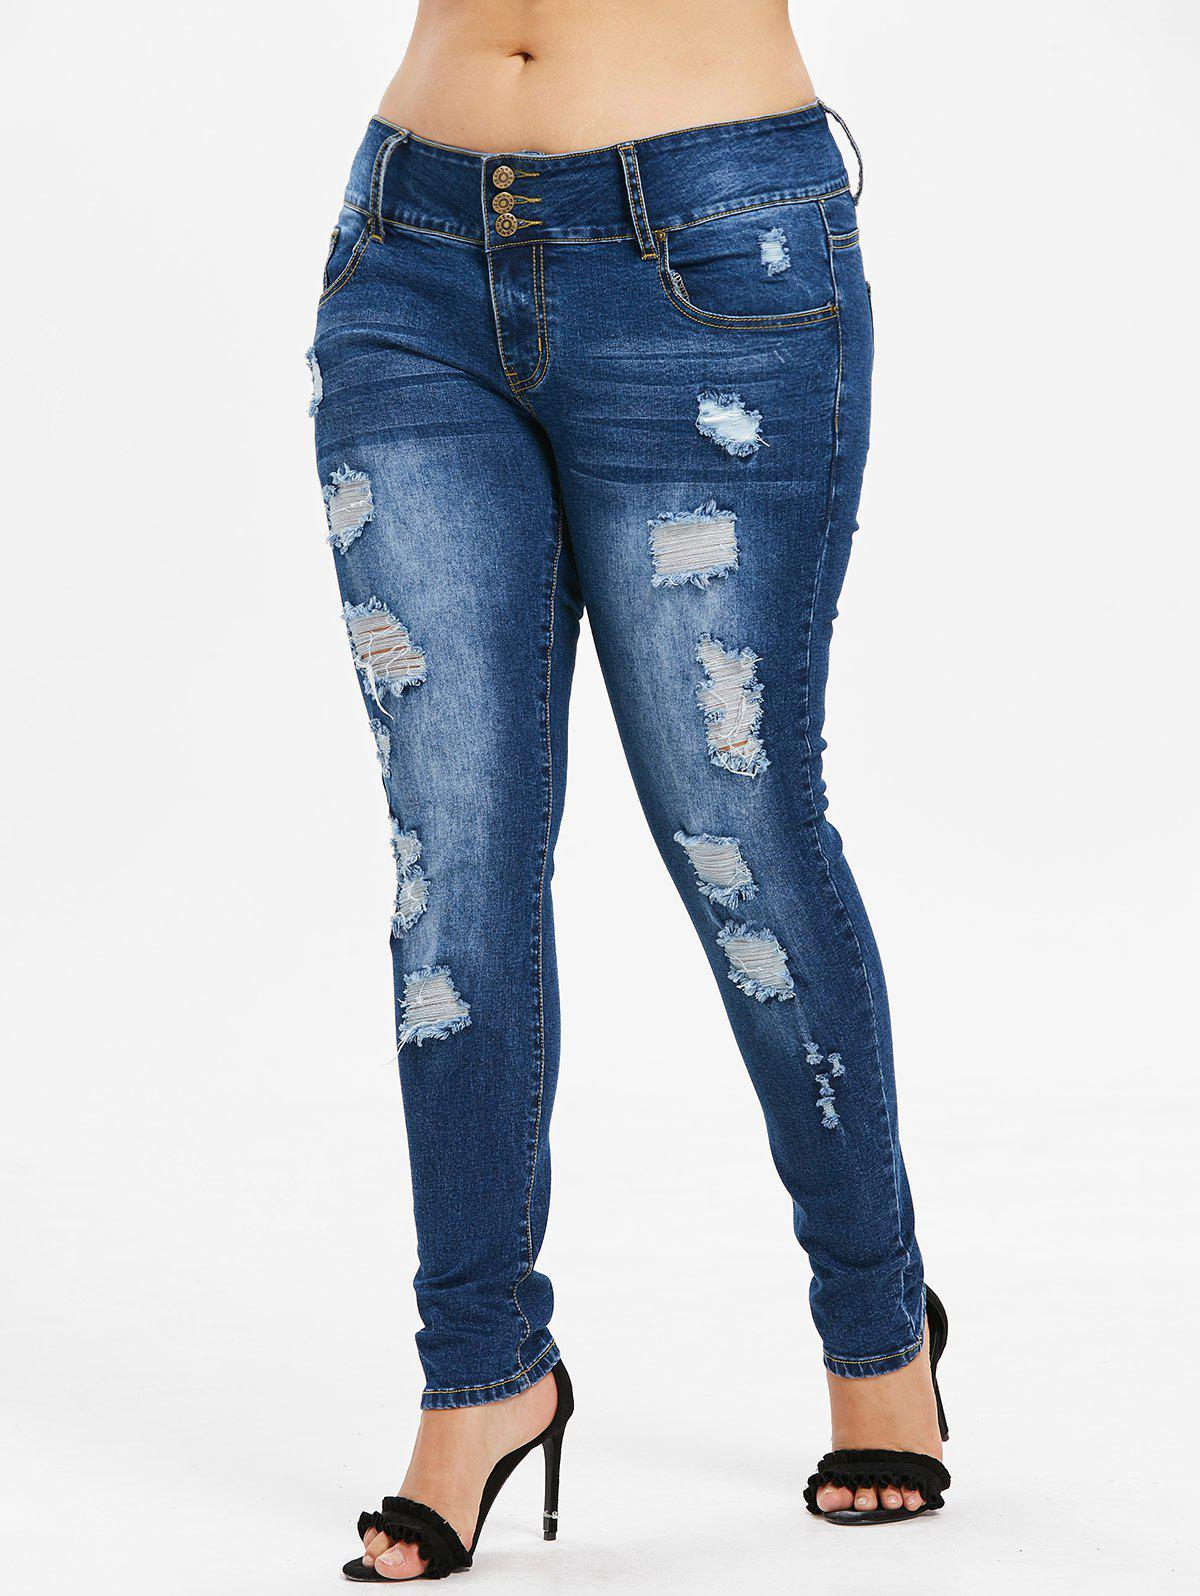 Plus Size Three Button Torn Jeans - DENIM DARK BLUE 4X